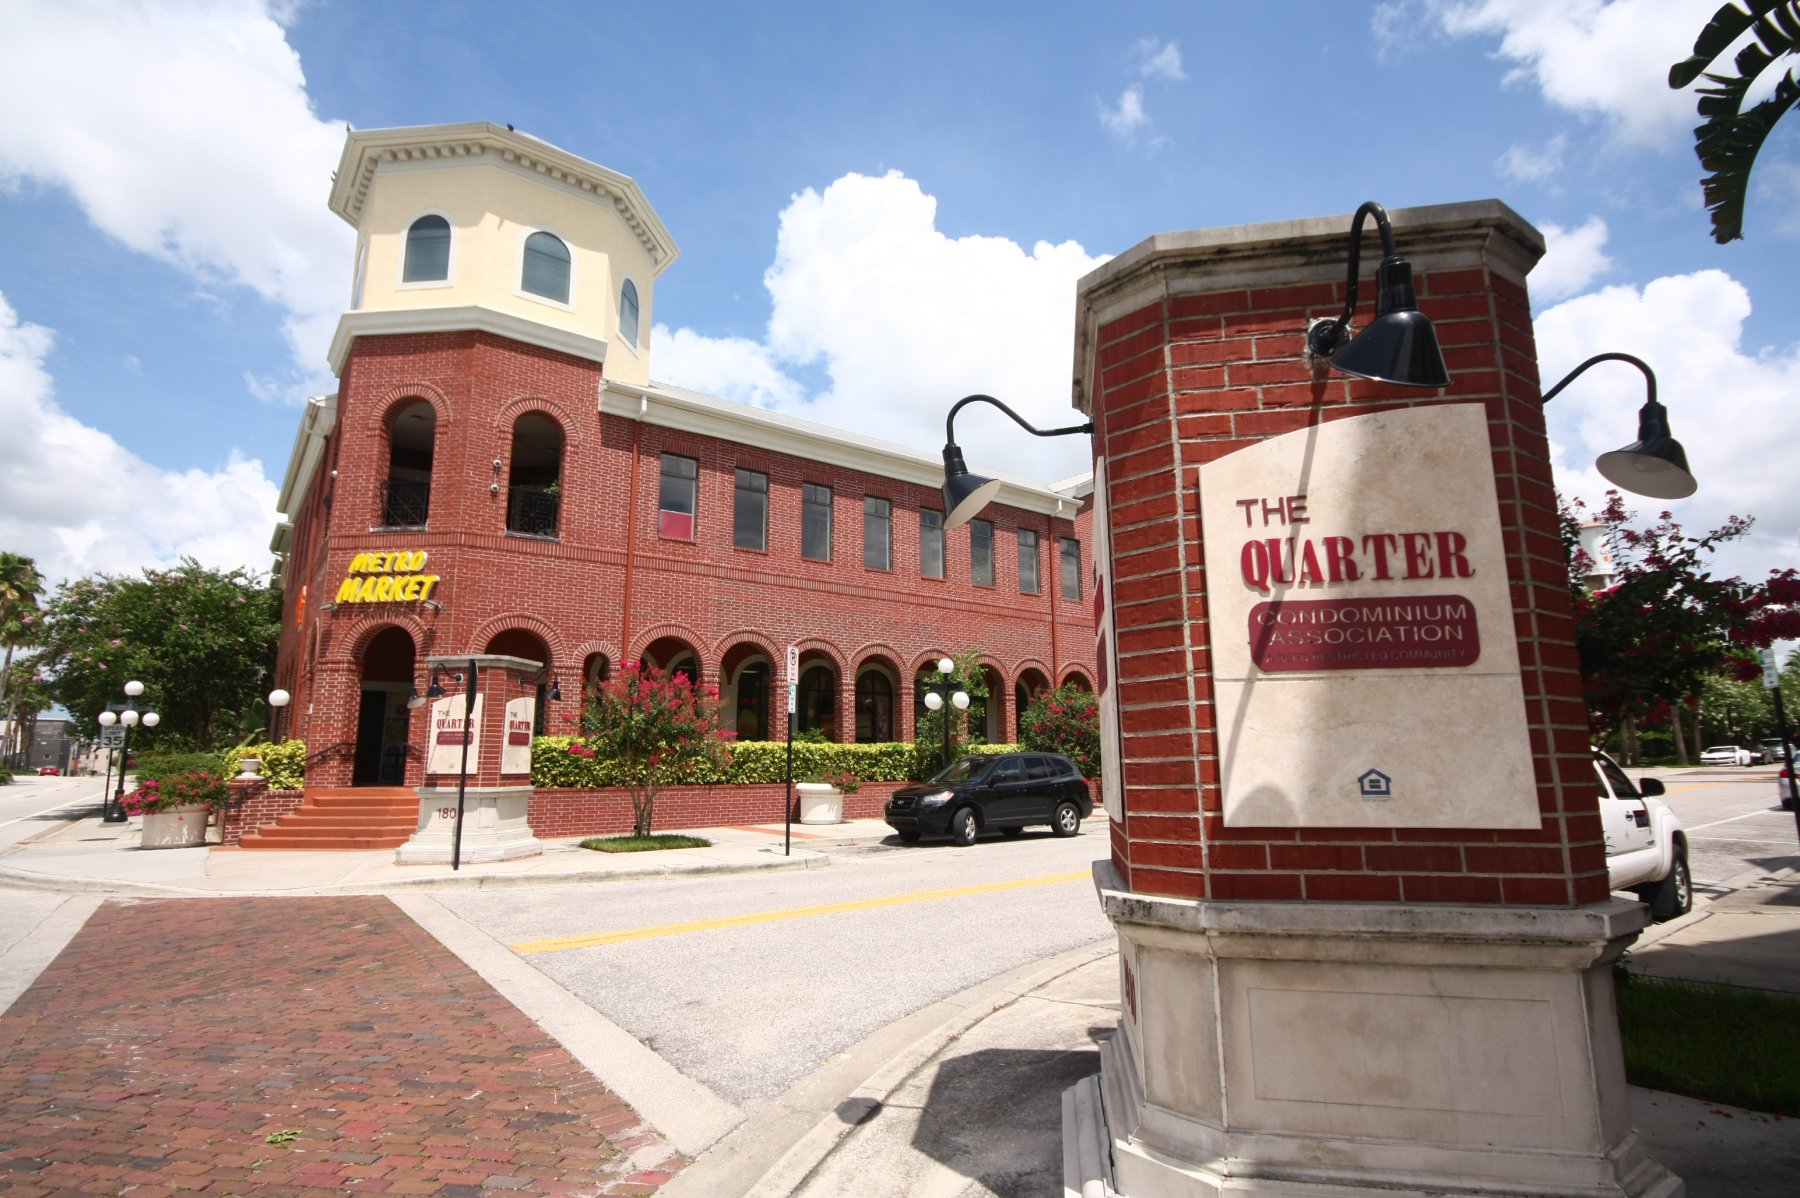 The Quarter at Ybor